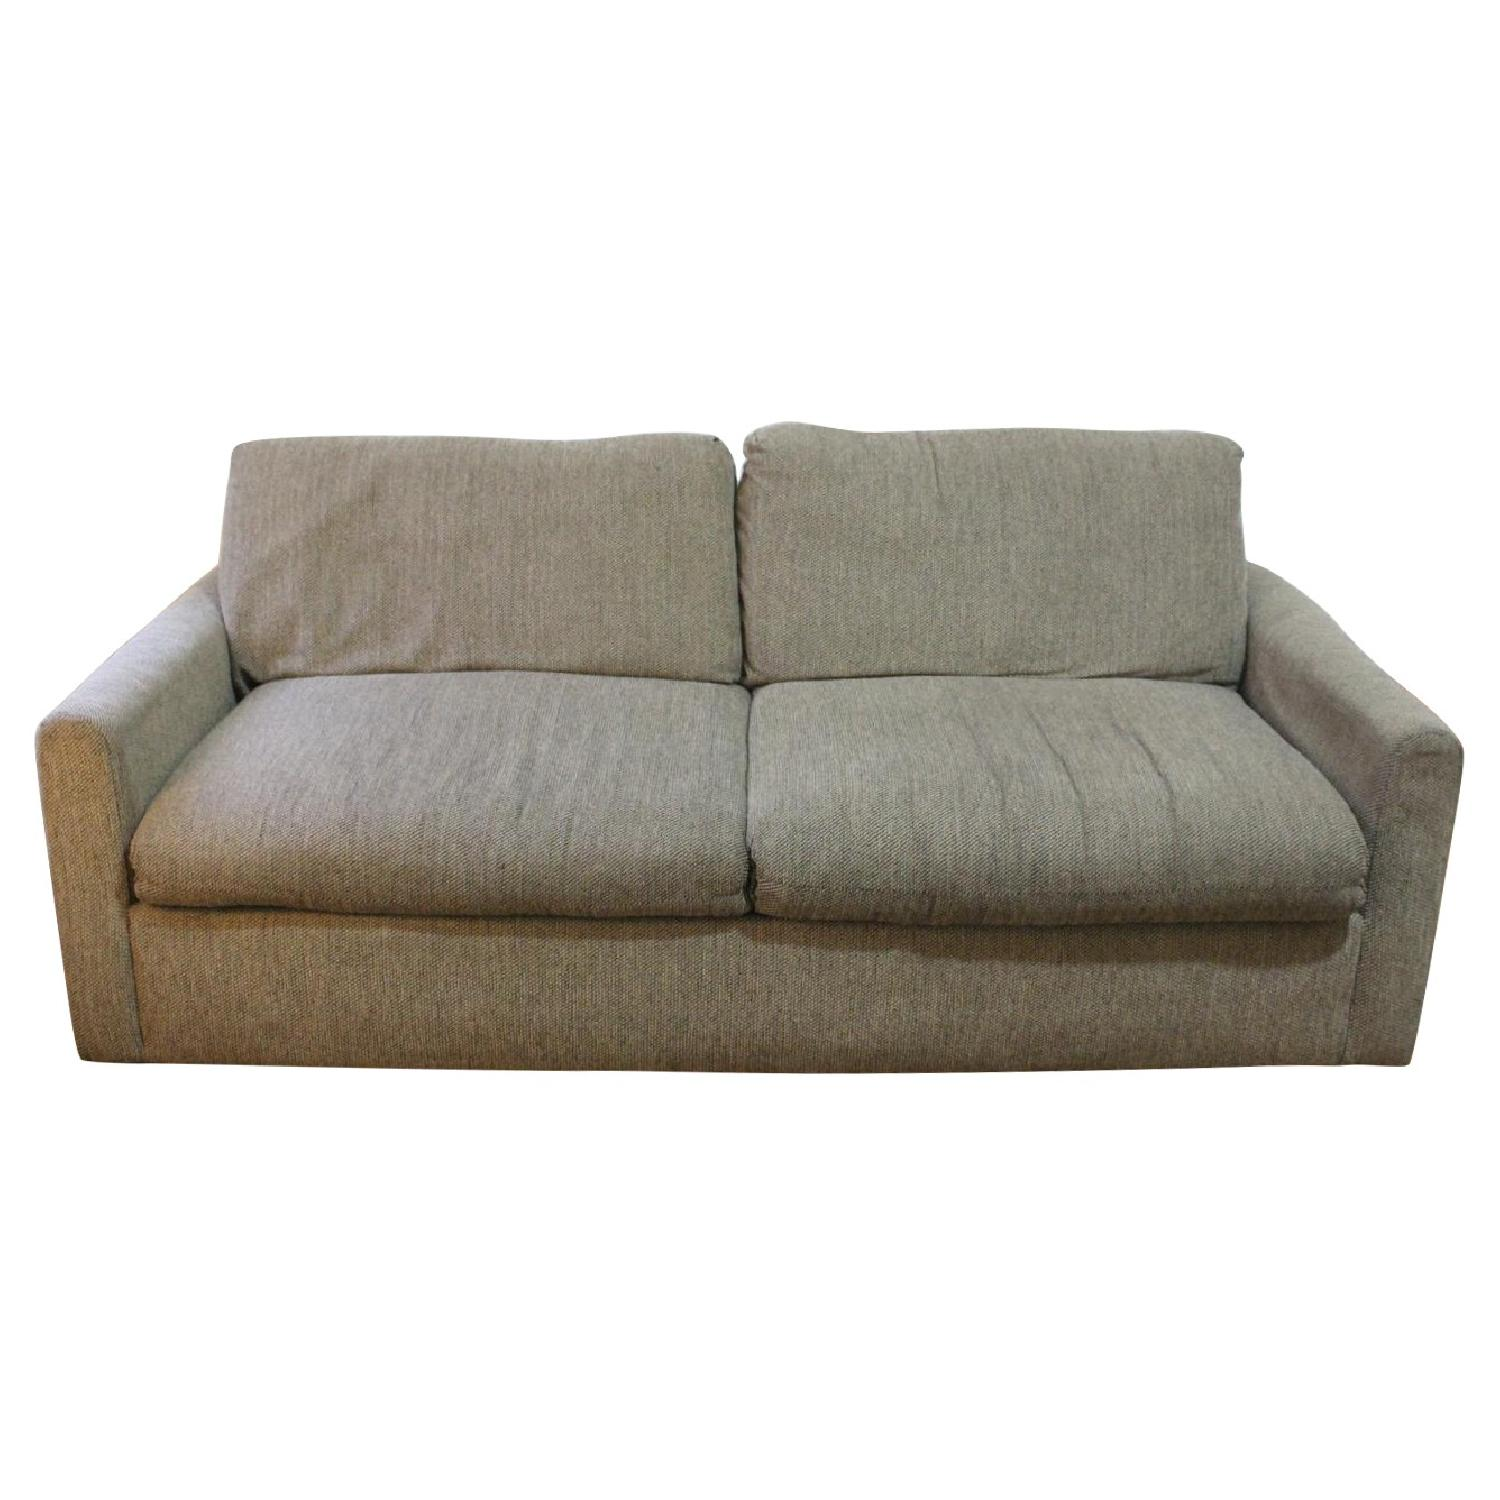 Natural Grey Tweed Sleeper Sofa